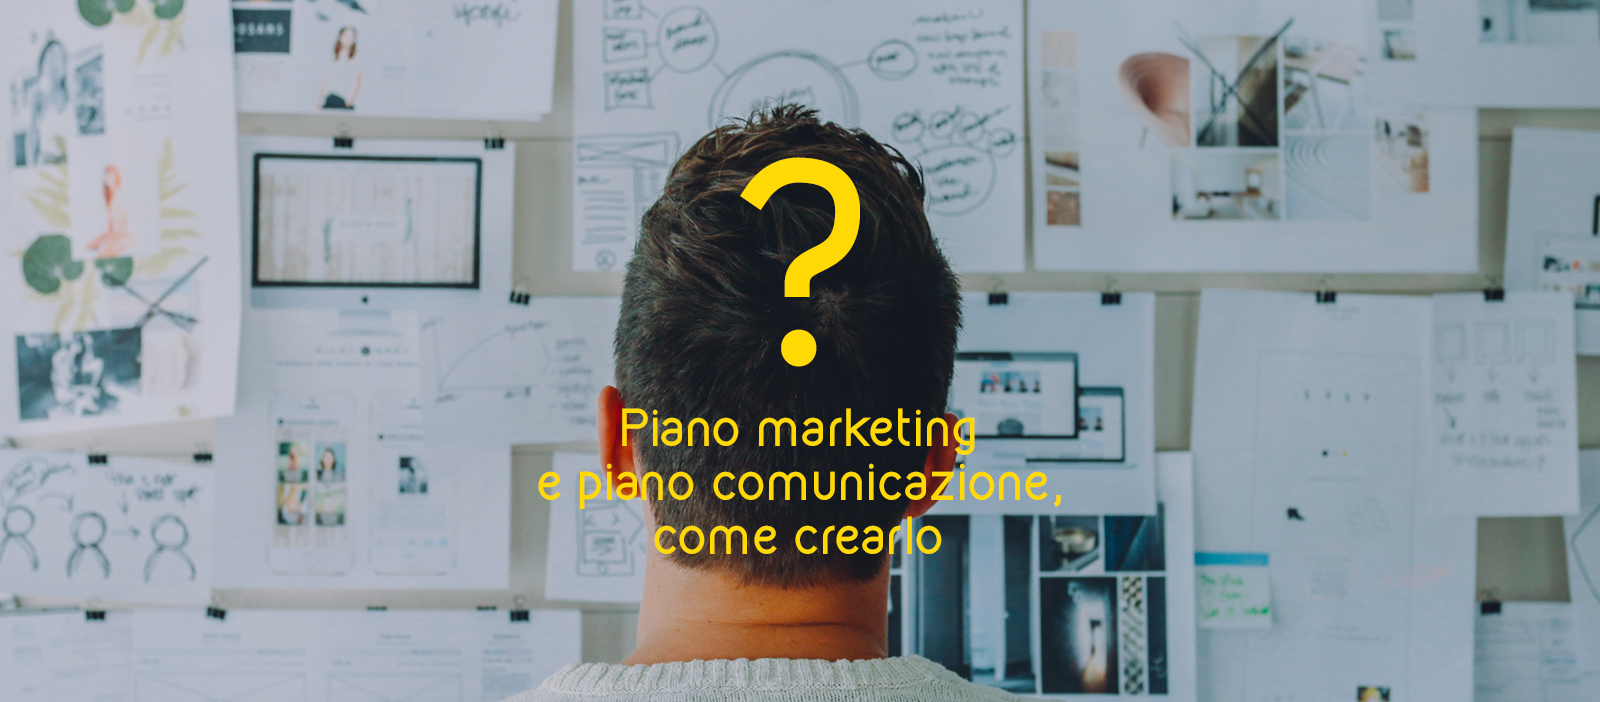 Piano Marketing e Piano Comunicazione: come crearlo in 4 punti